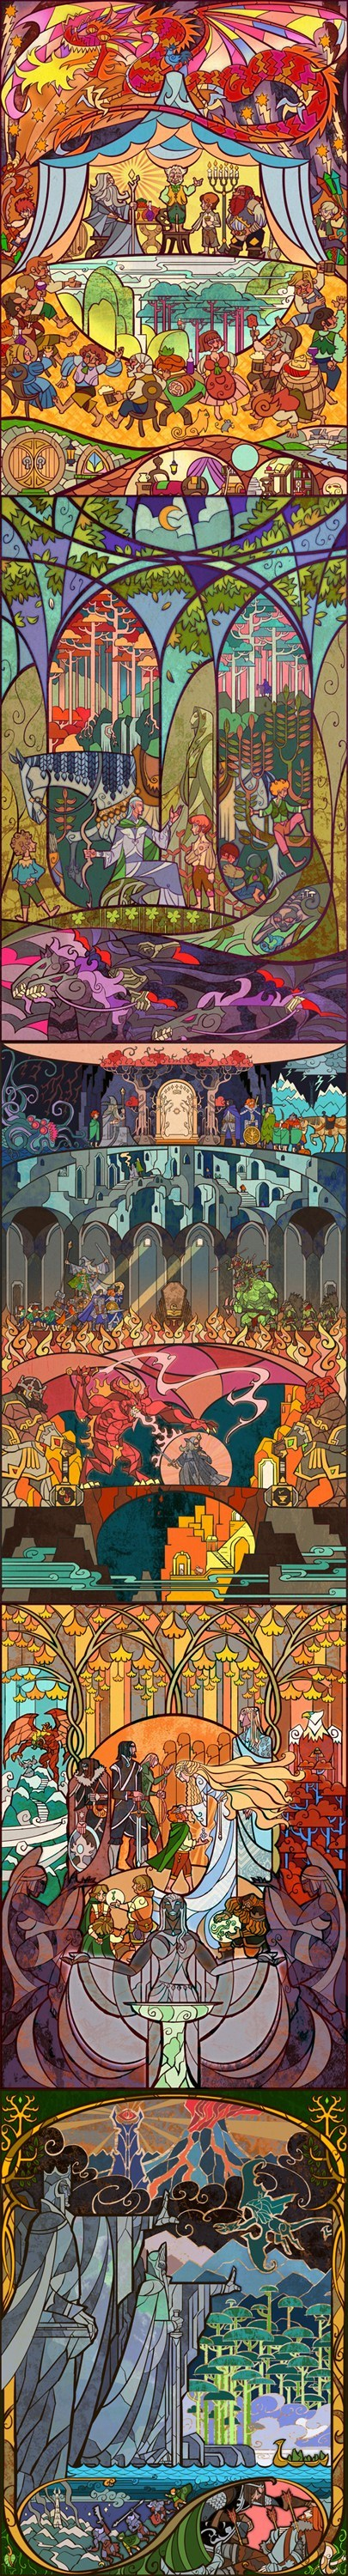 "Set Phasers to LOL: Stained Glass ""Lord of the Rings"" Art"